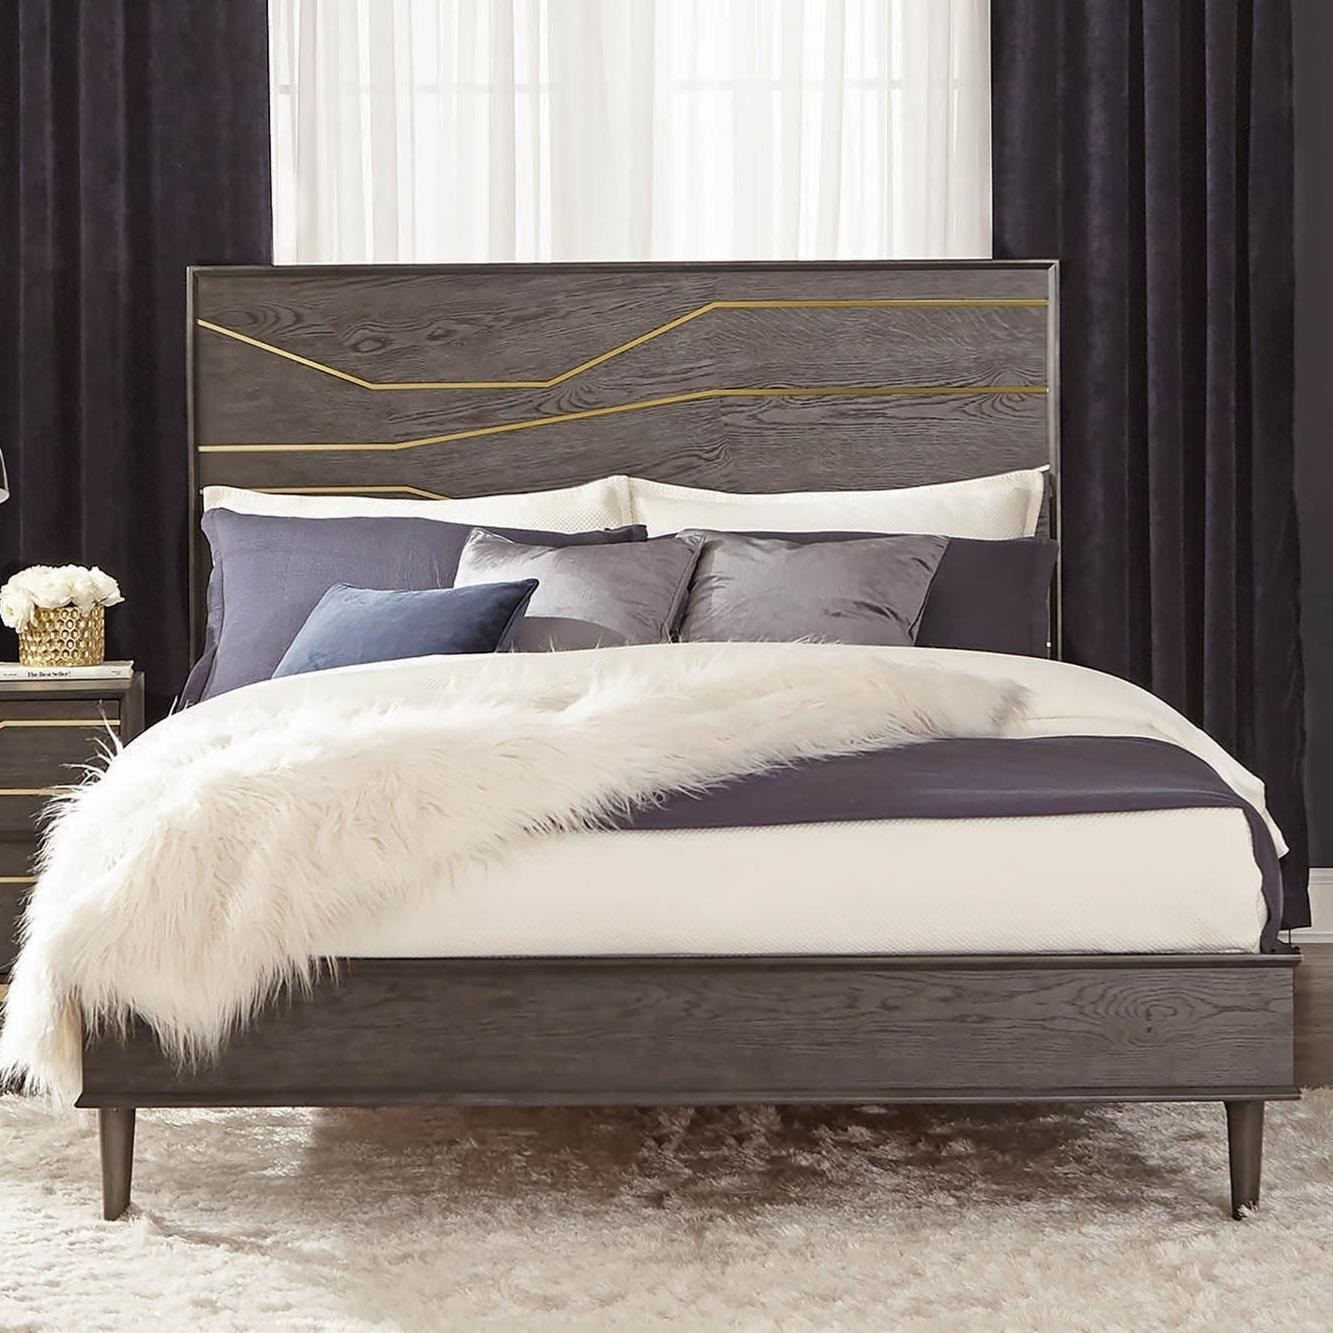 Cheap King Platform Beds Tara Contemporary King Platform Bed With Geometric Gold Inlay By Scott Living At Del Sol Furniture